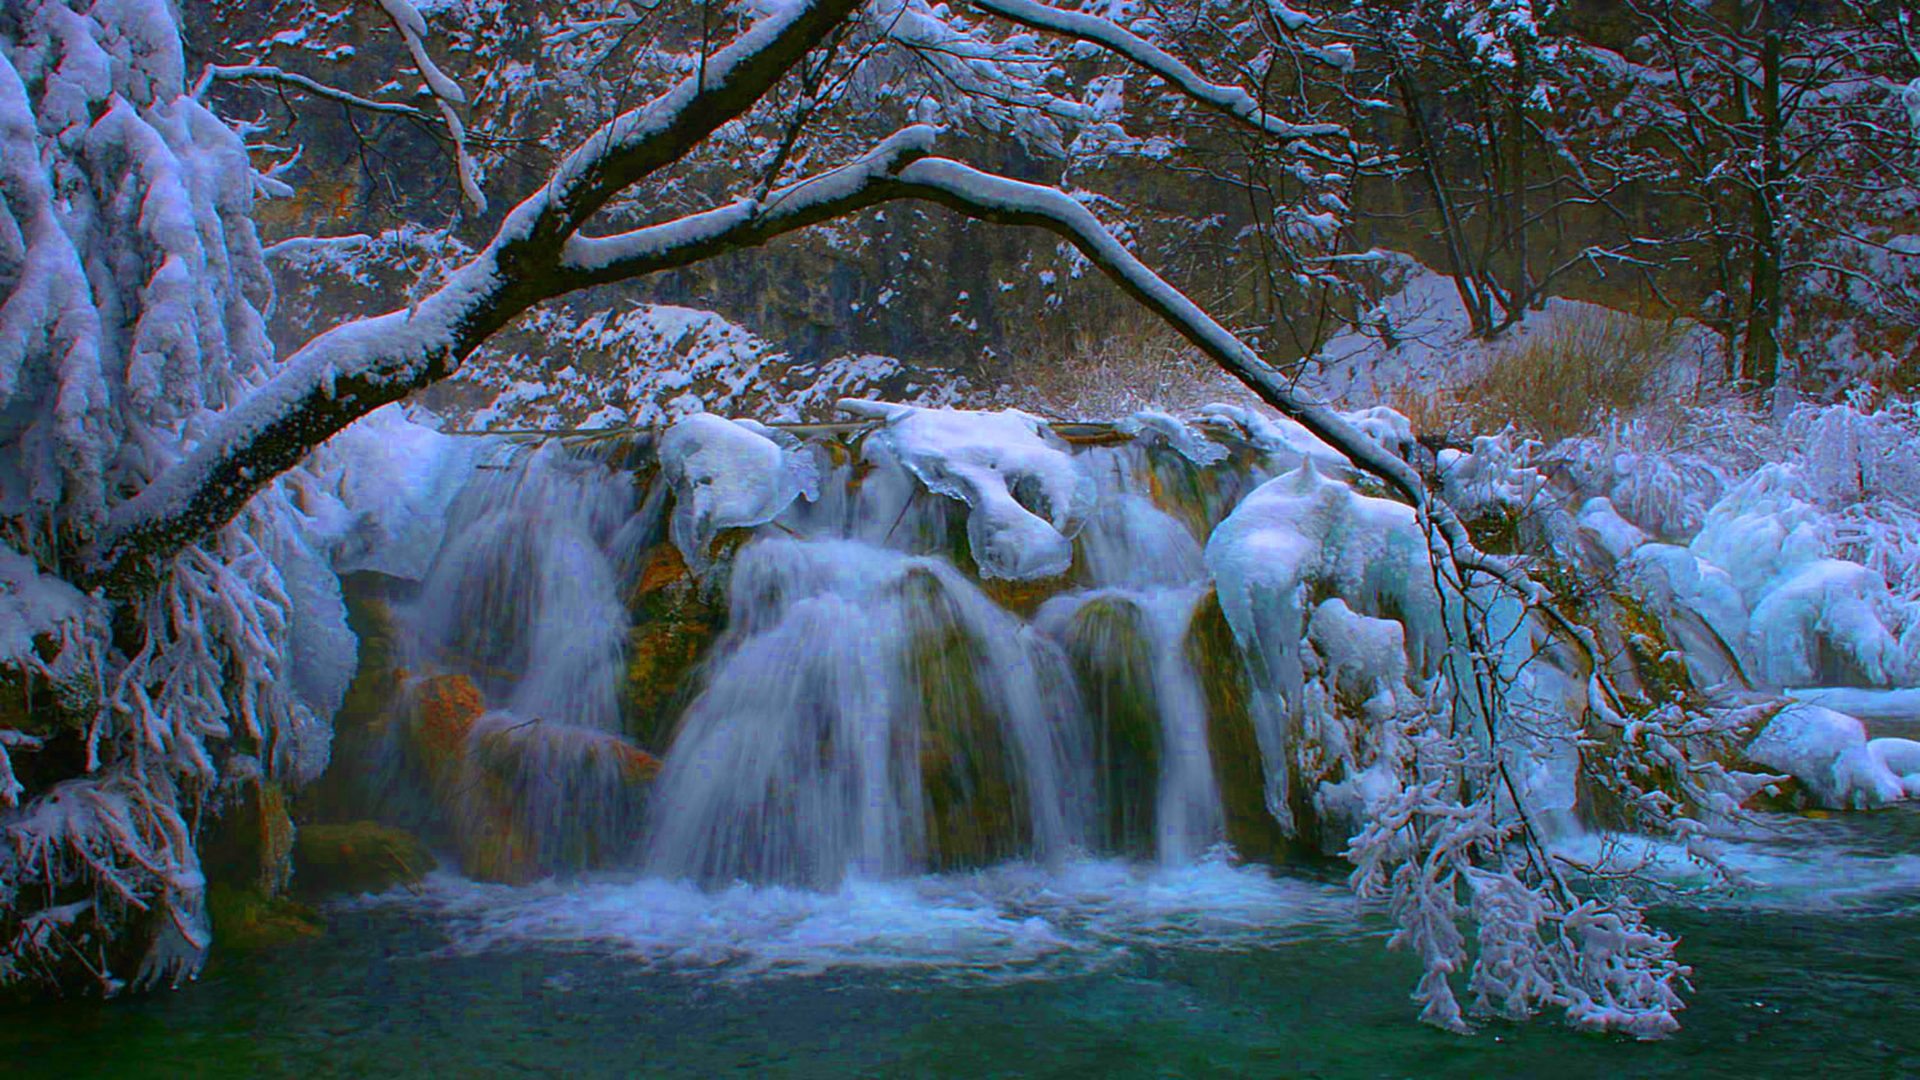 Wallpaper Chelsea 3d Android Plitvice Waterfall Winter Wallpaper Hd 07942